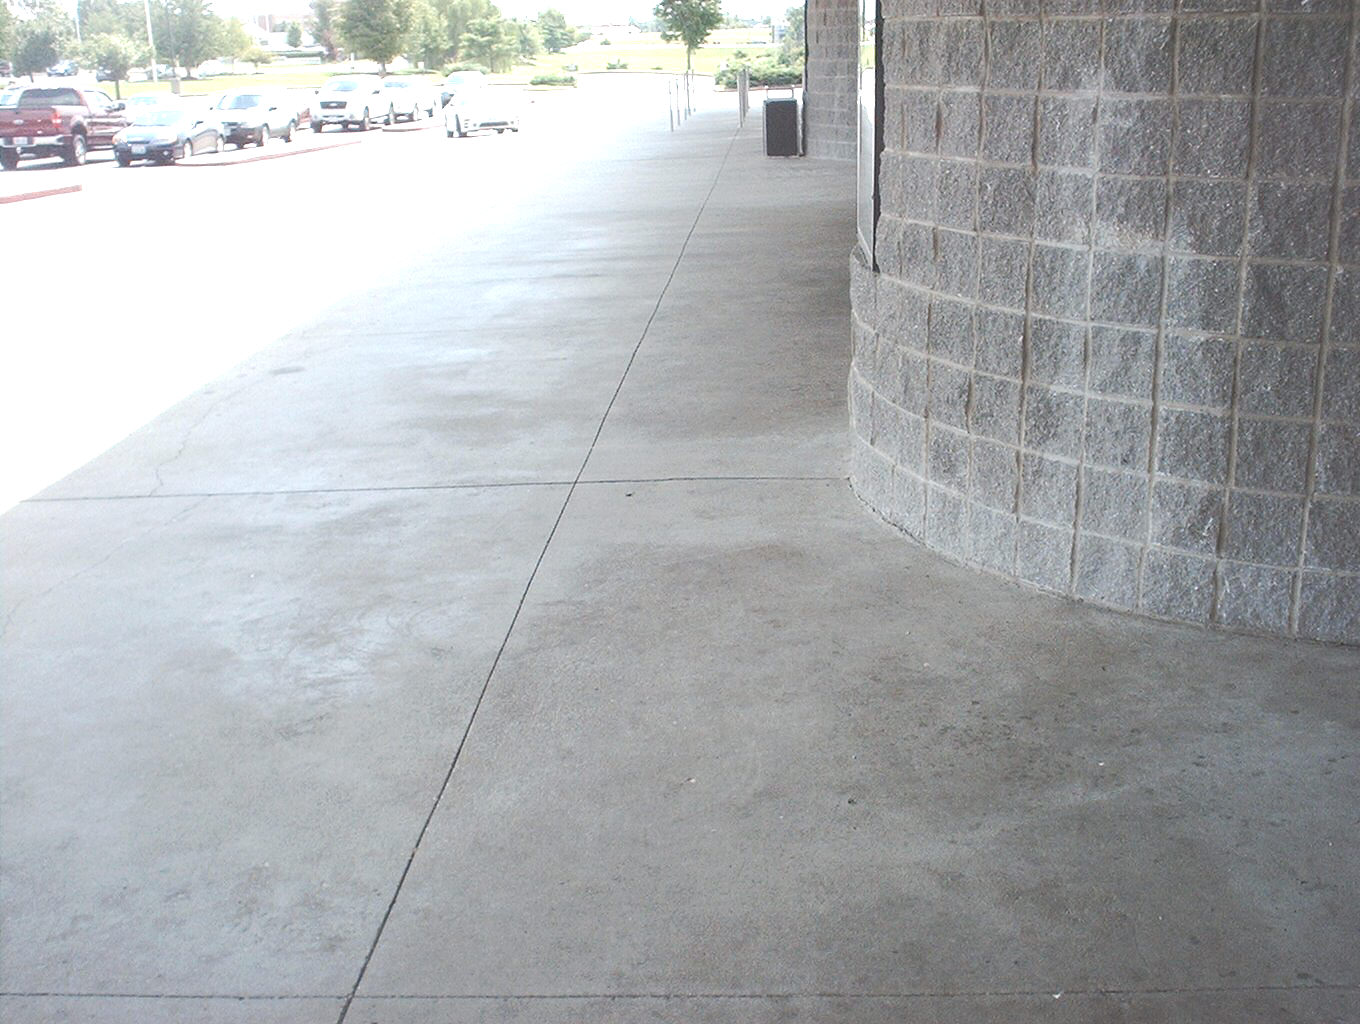 What a person can expect when cleaning concrete